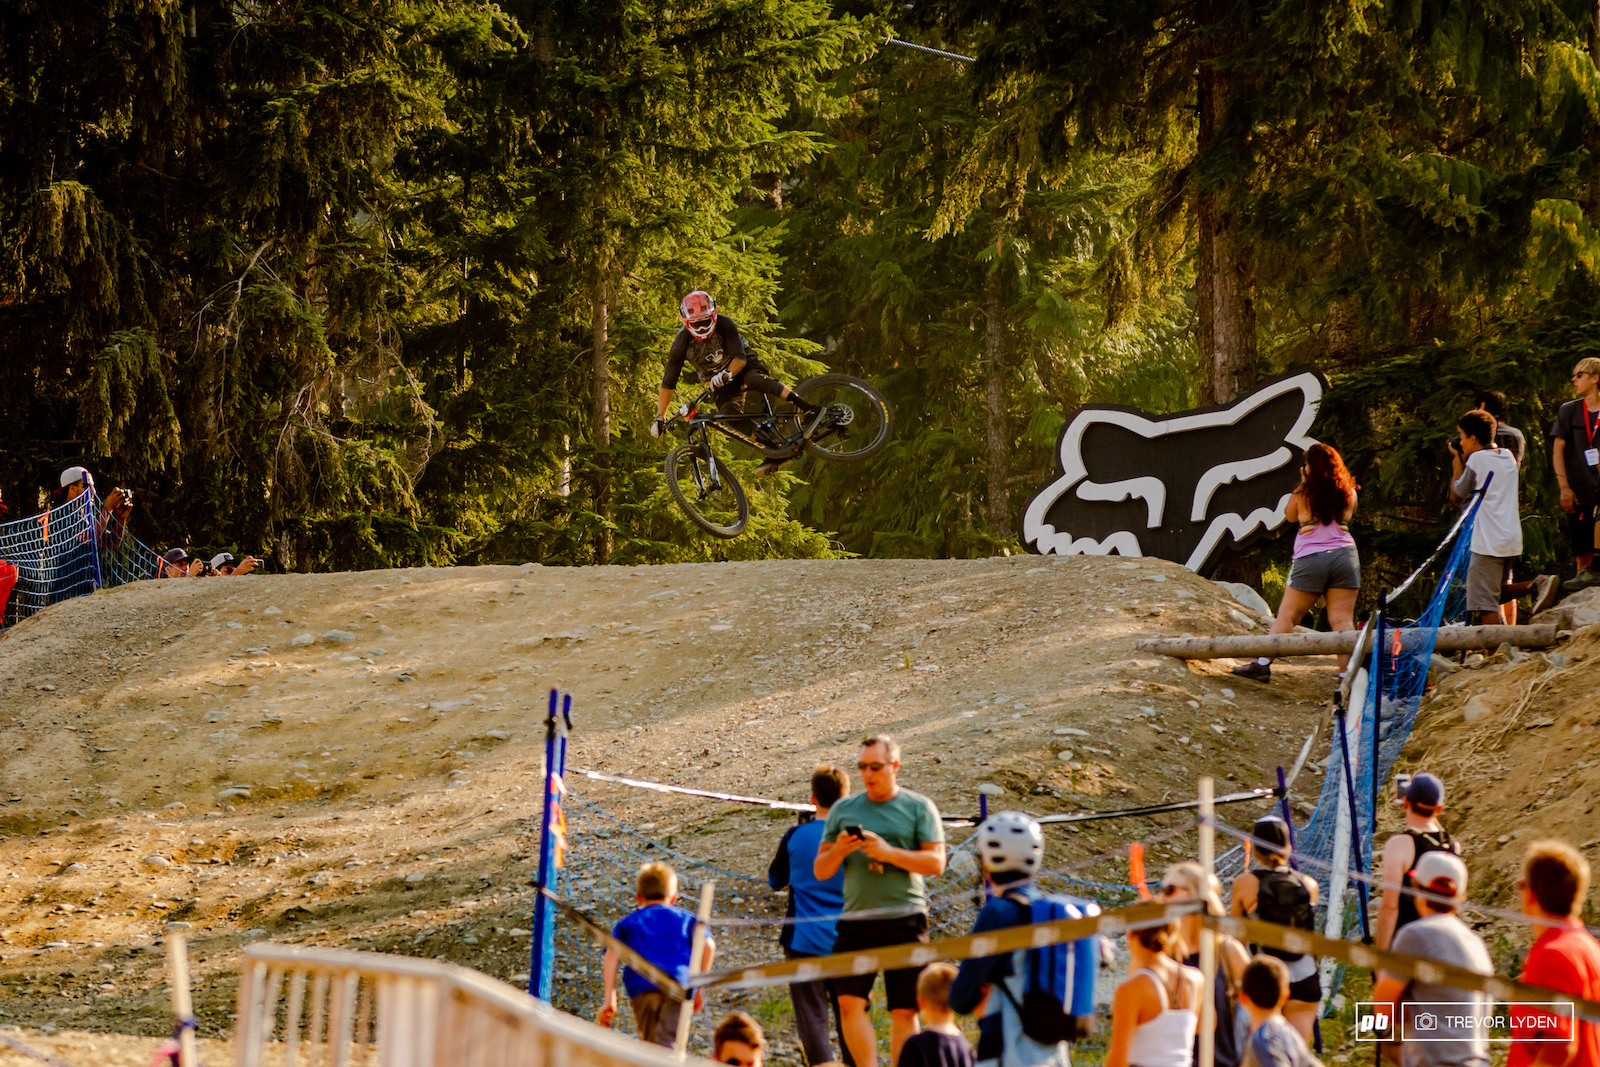 Adrien Loron couldn t quite find his way to the podium this year but this isn t his only chance to take home some Crankworx Whistler hardware.